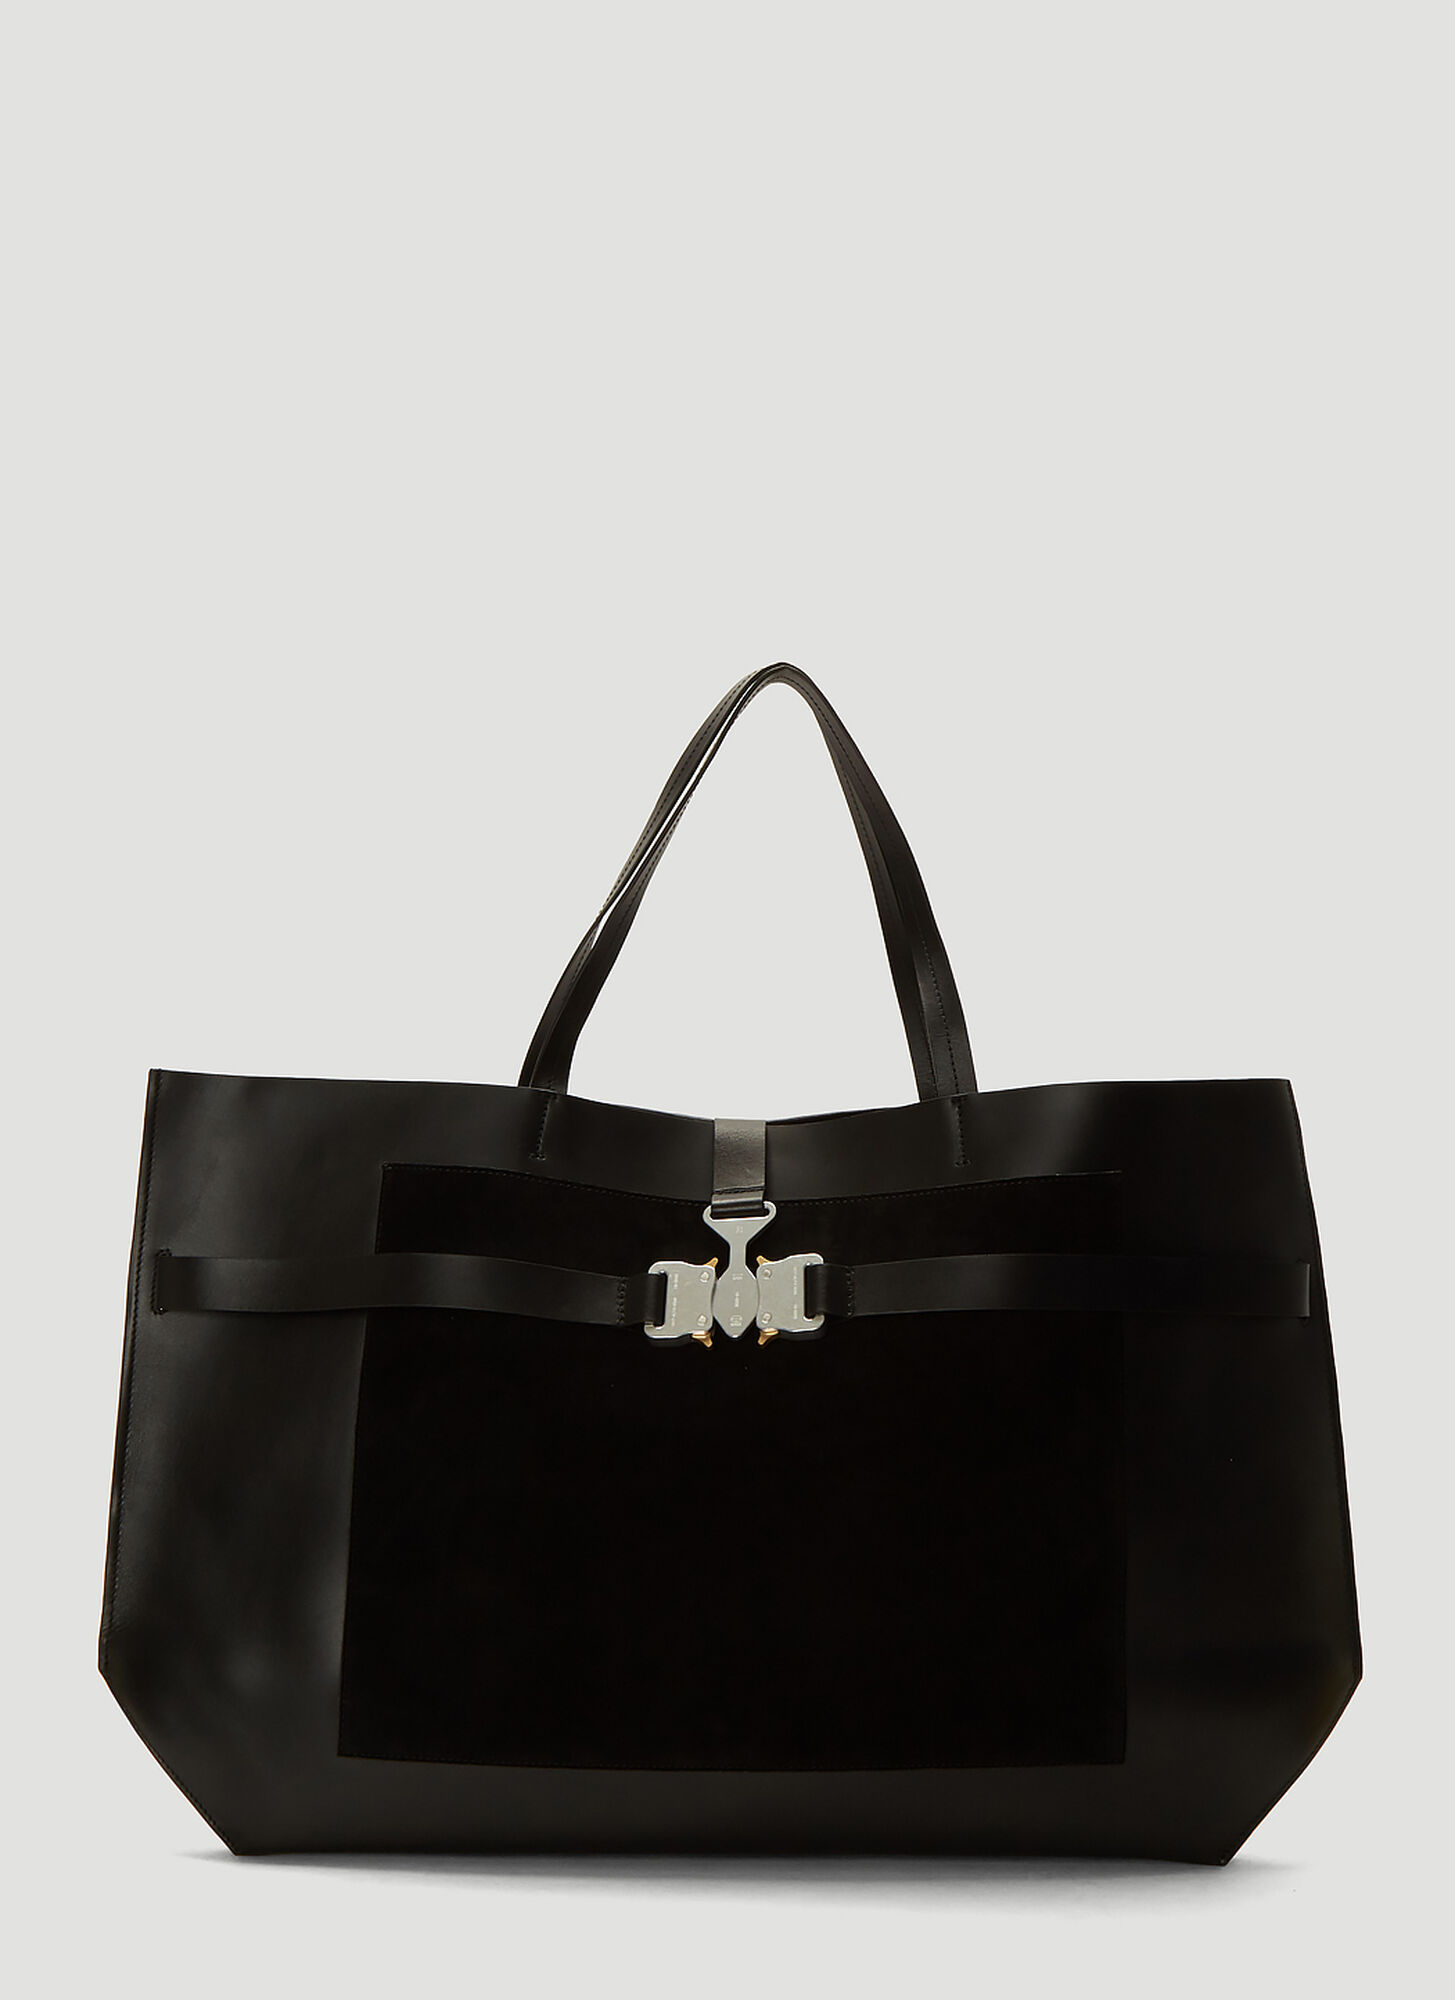 1017 ALYX 9SM Tri-Buckle Tote Bag in Black